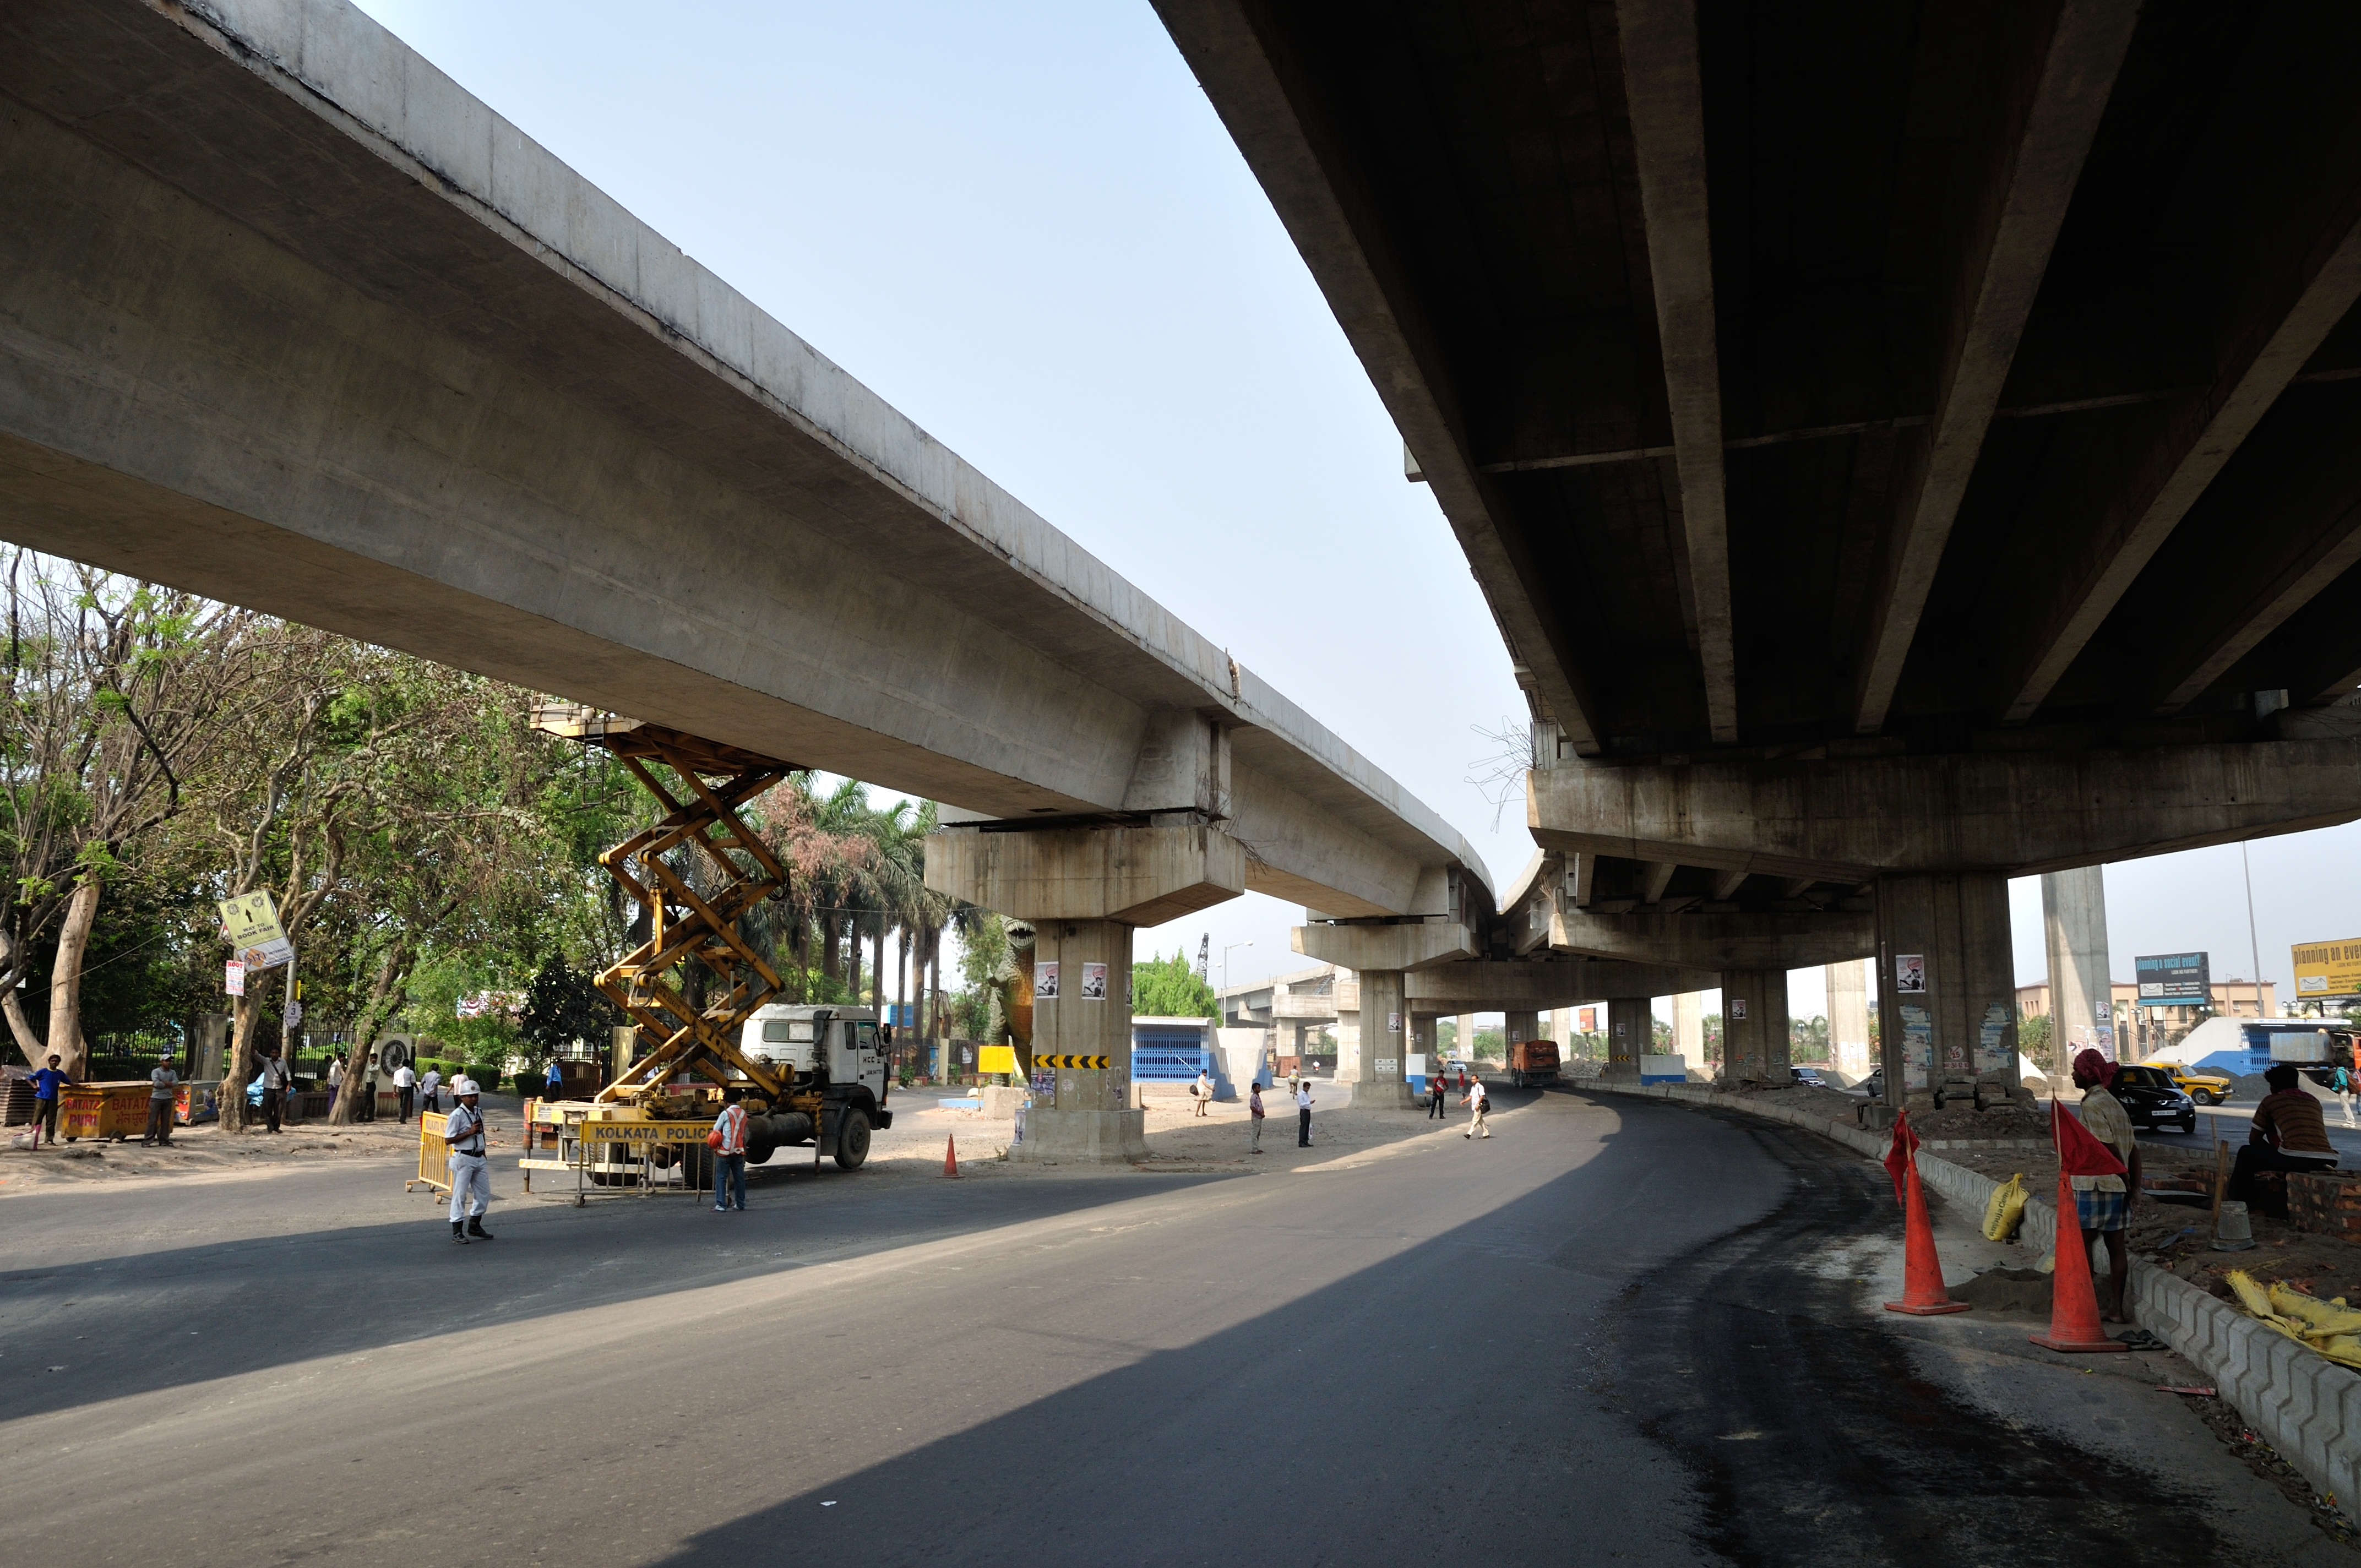 flyovers under construction in bangalore dating